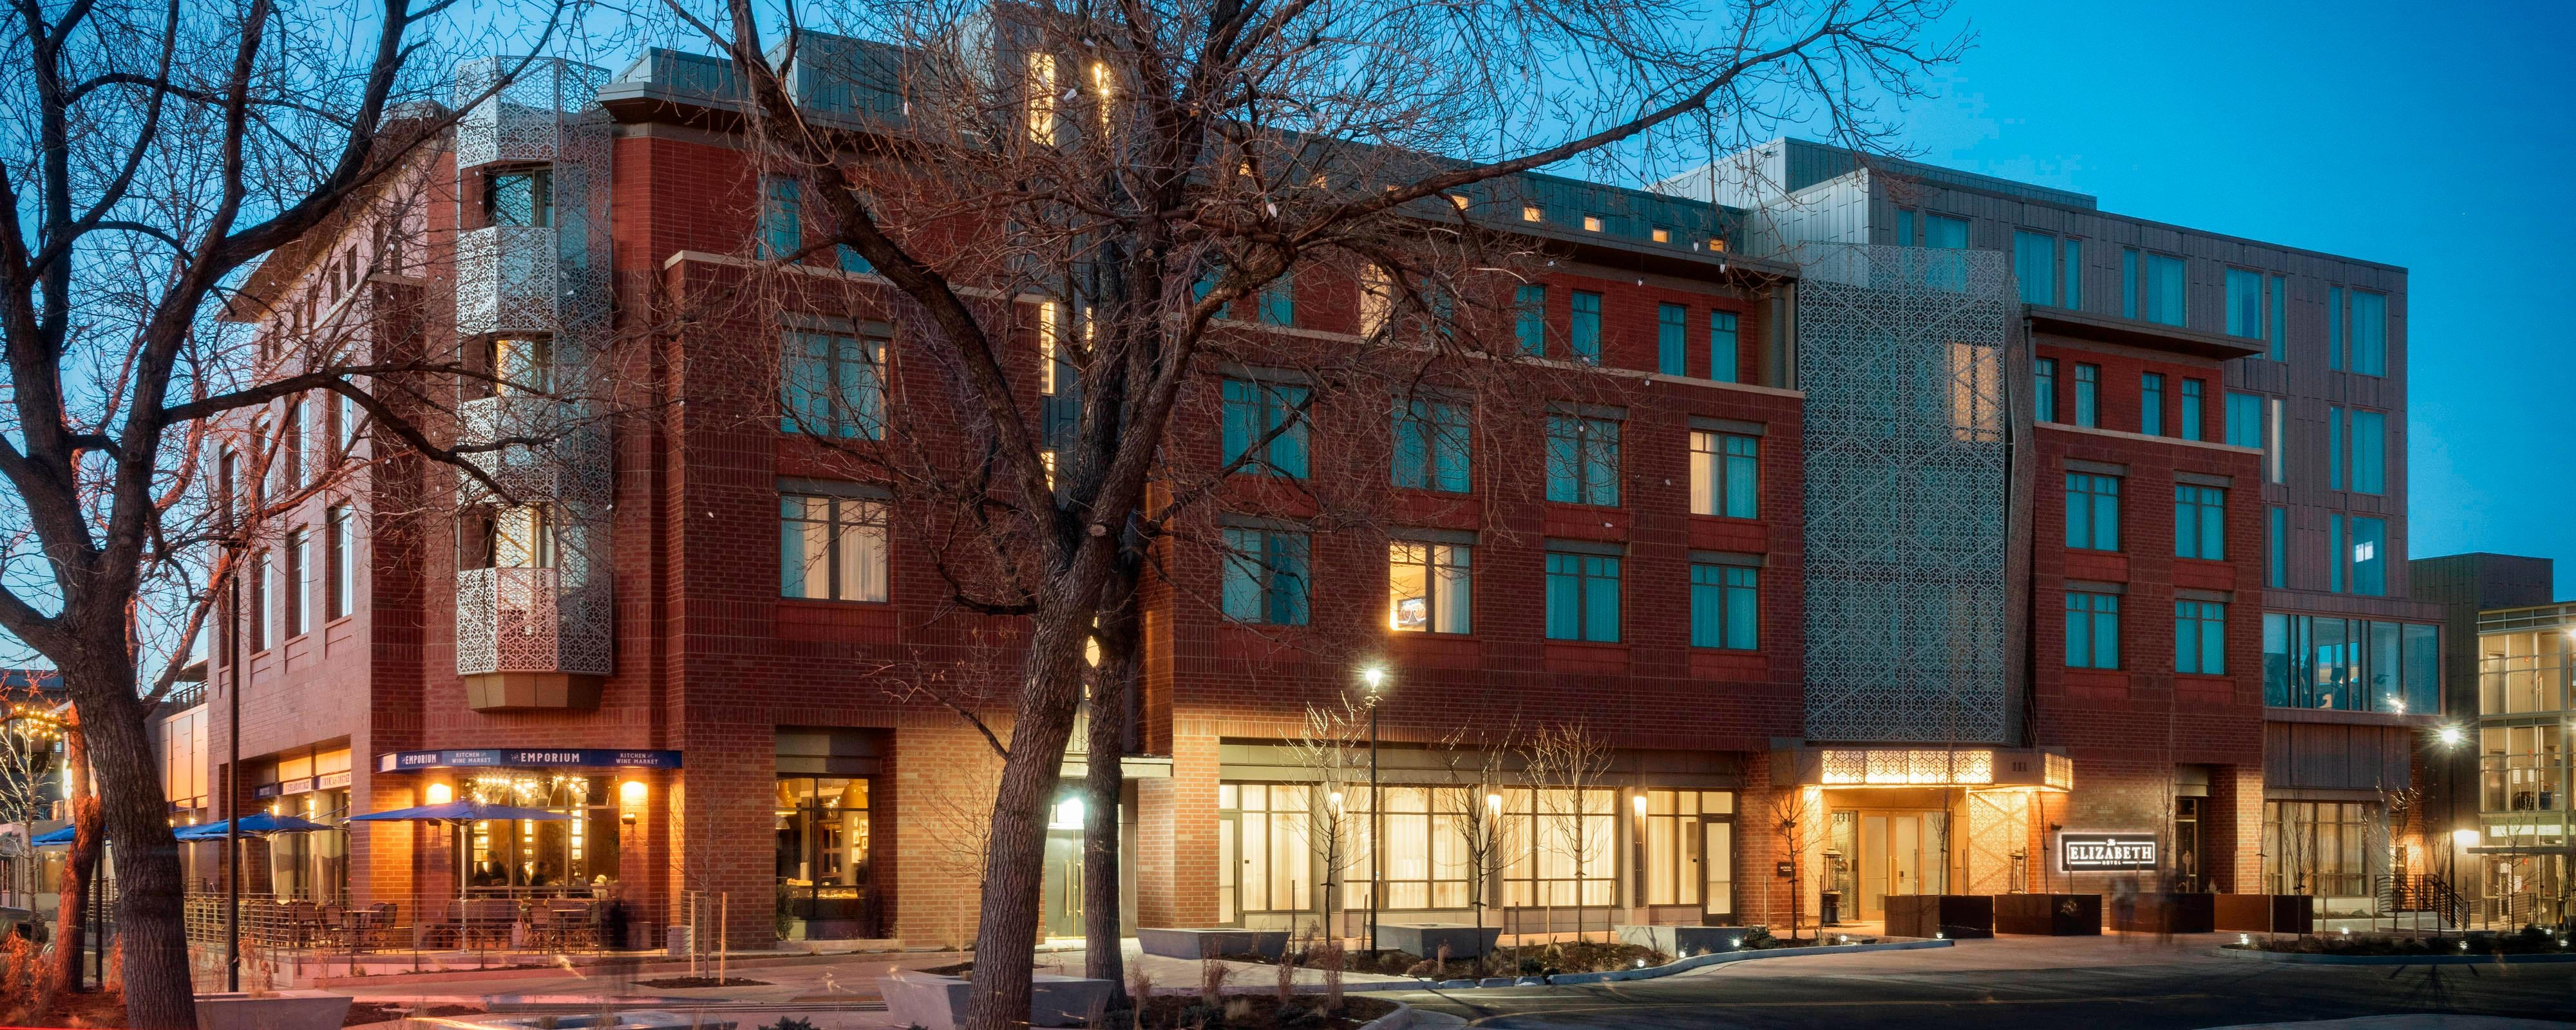 Boutique Hotel In Fort Collins The Elizabeth Hotel Autograph Collection